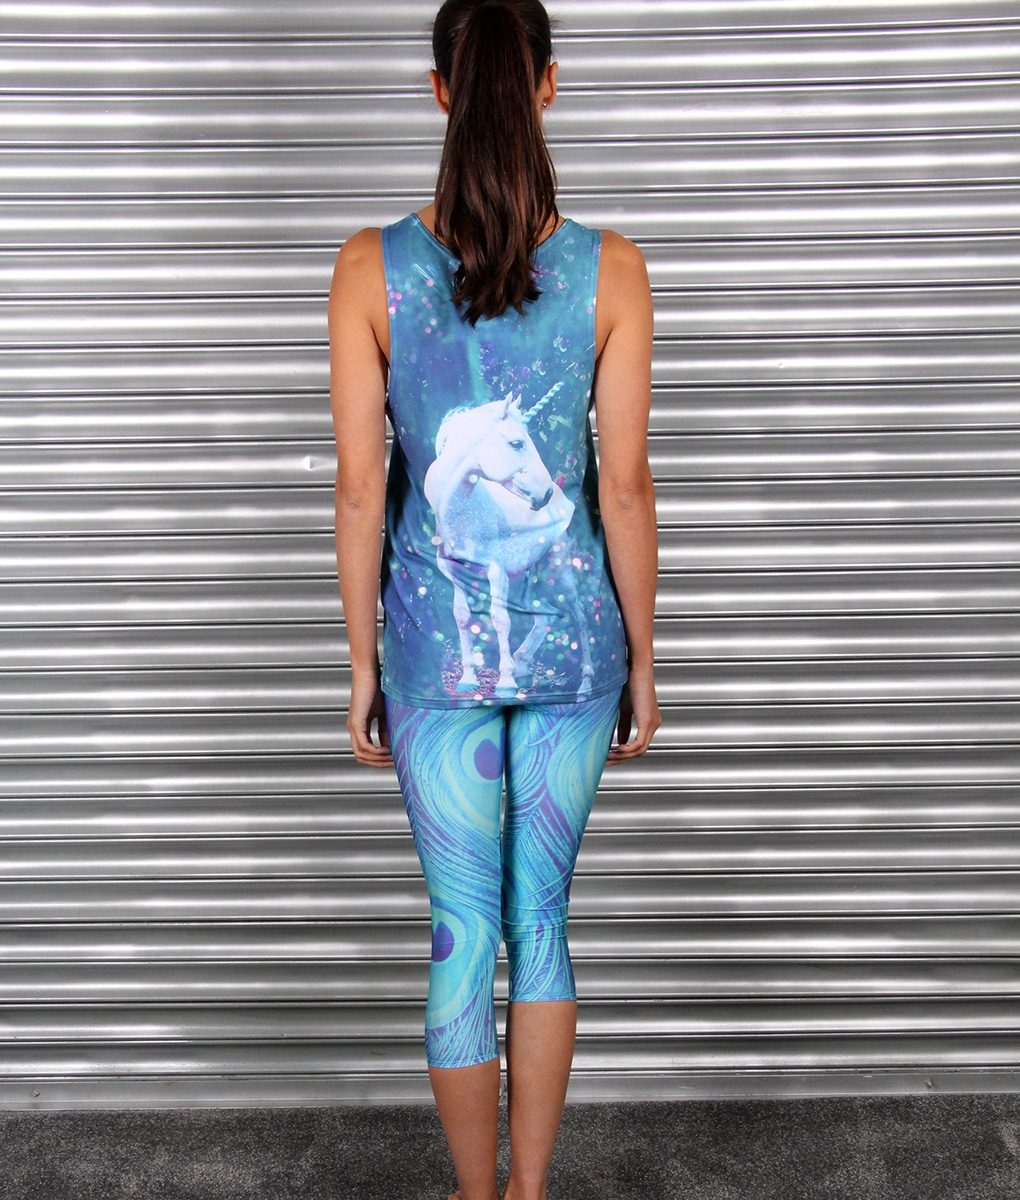 Alila Active Peacock Print Capris and Blue Unicorn top by Mr Gugu